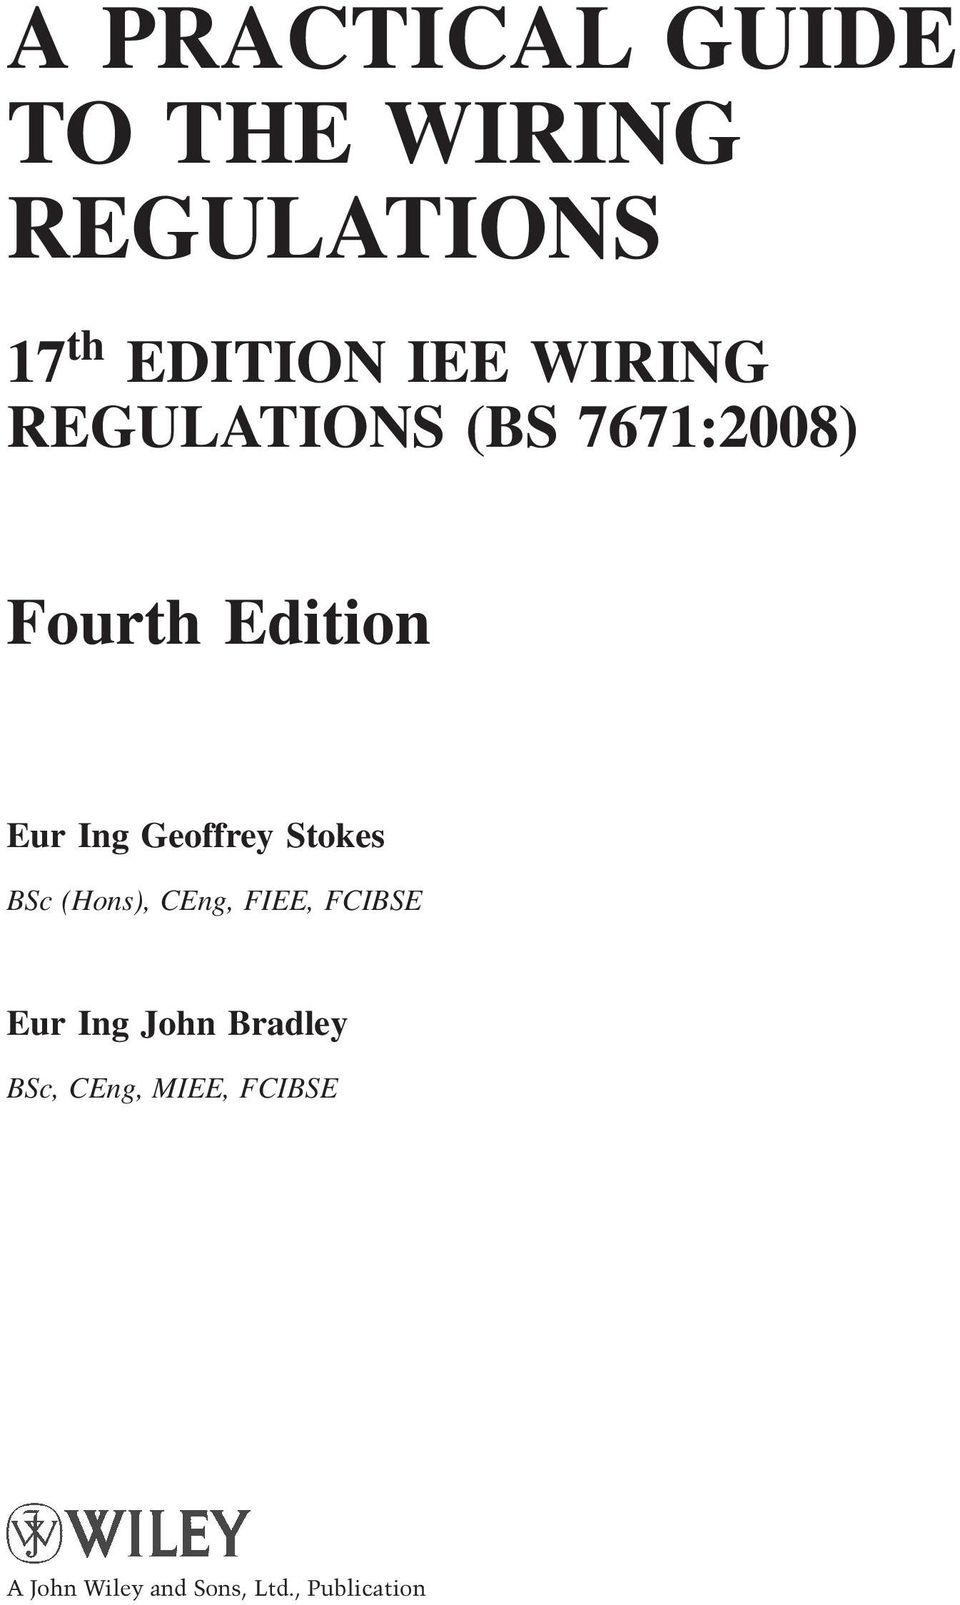 A Practical Guide To The Wiring Regulations Pdf 17th Edition Book Geoffrey Stokes Bsc Hons Ceng Fiee Fcibse Eur Ing John